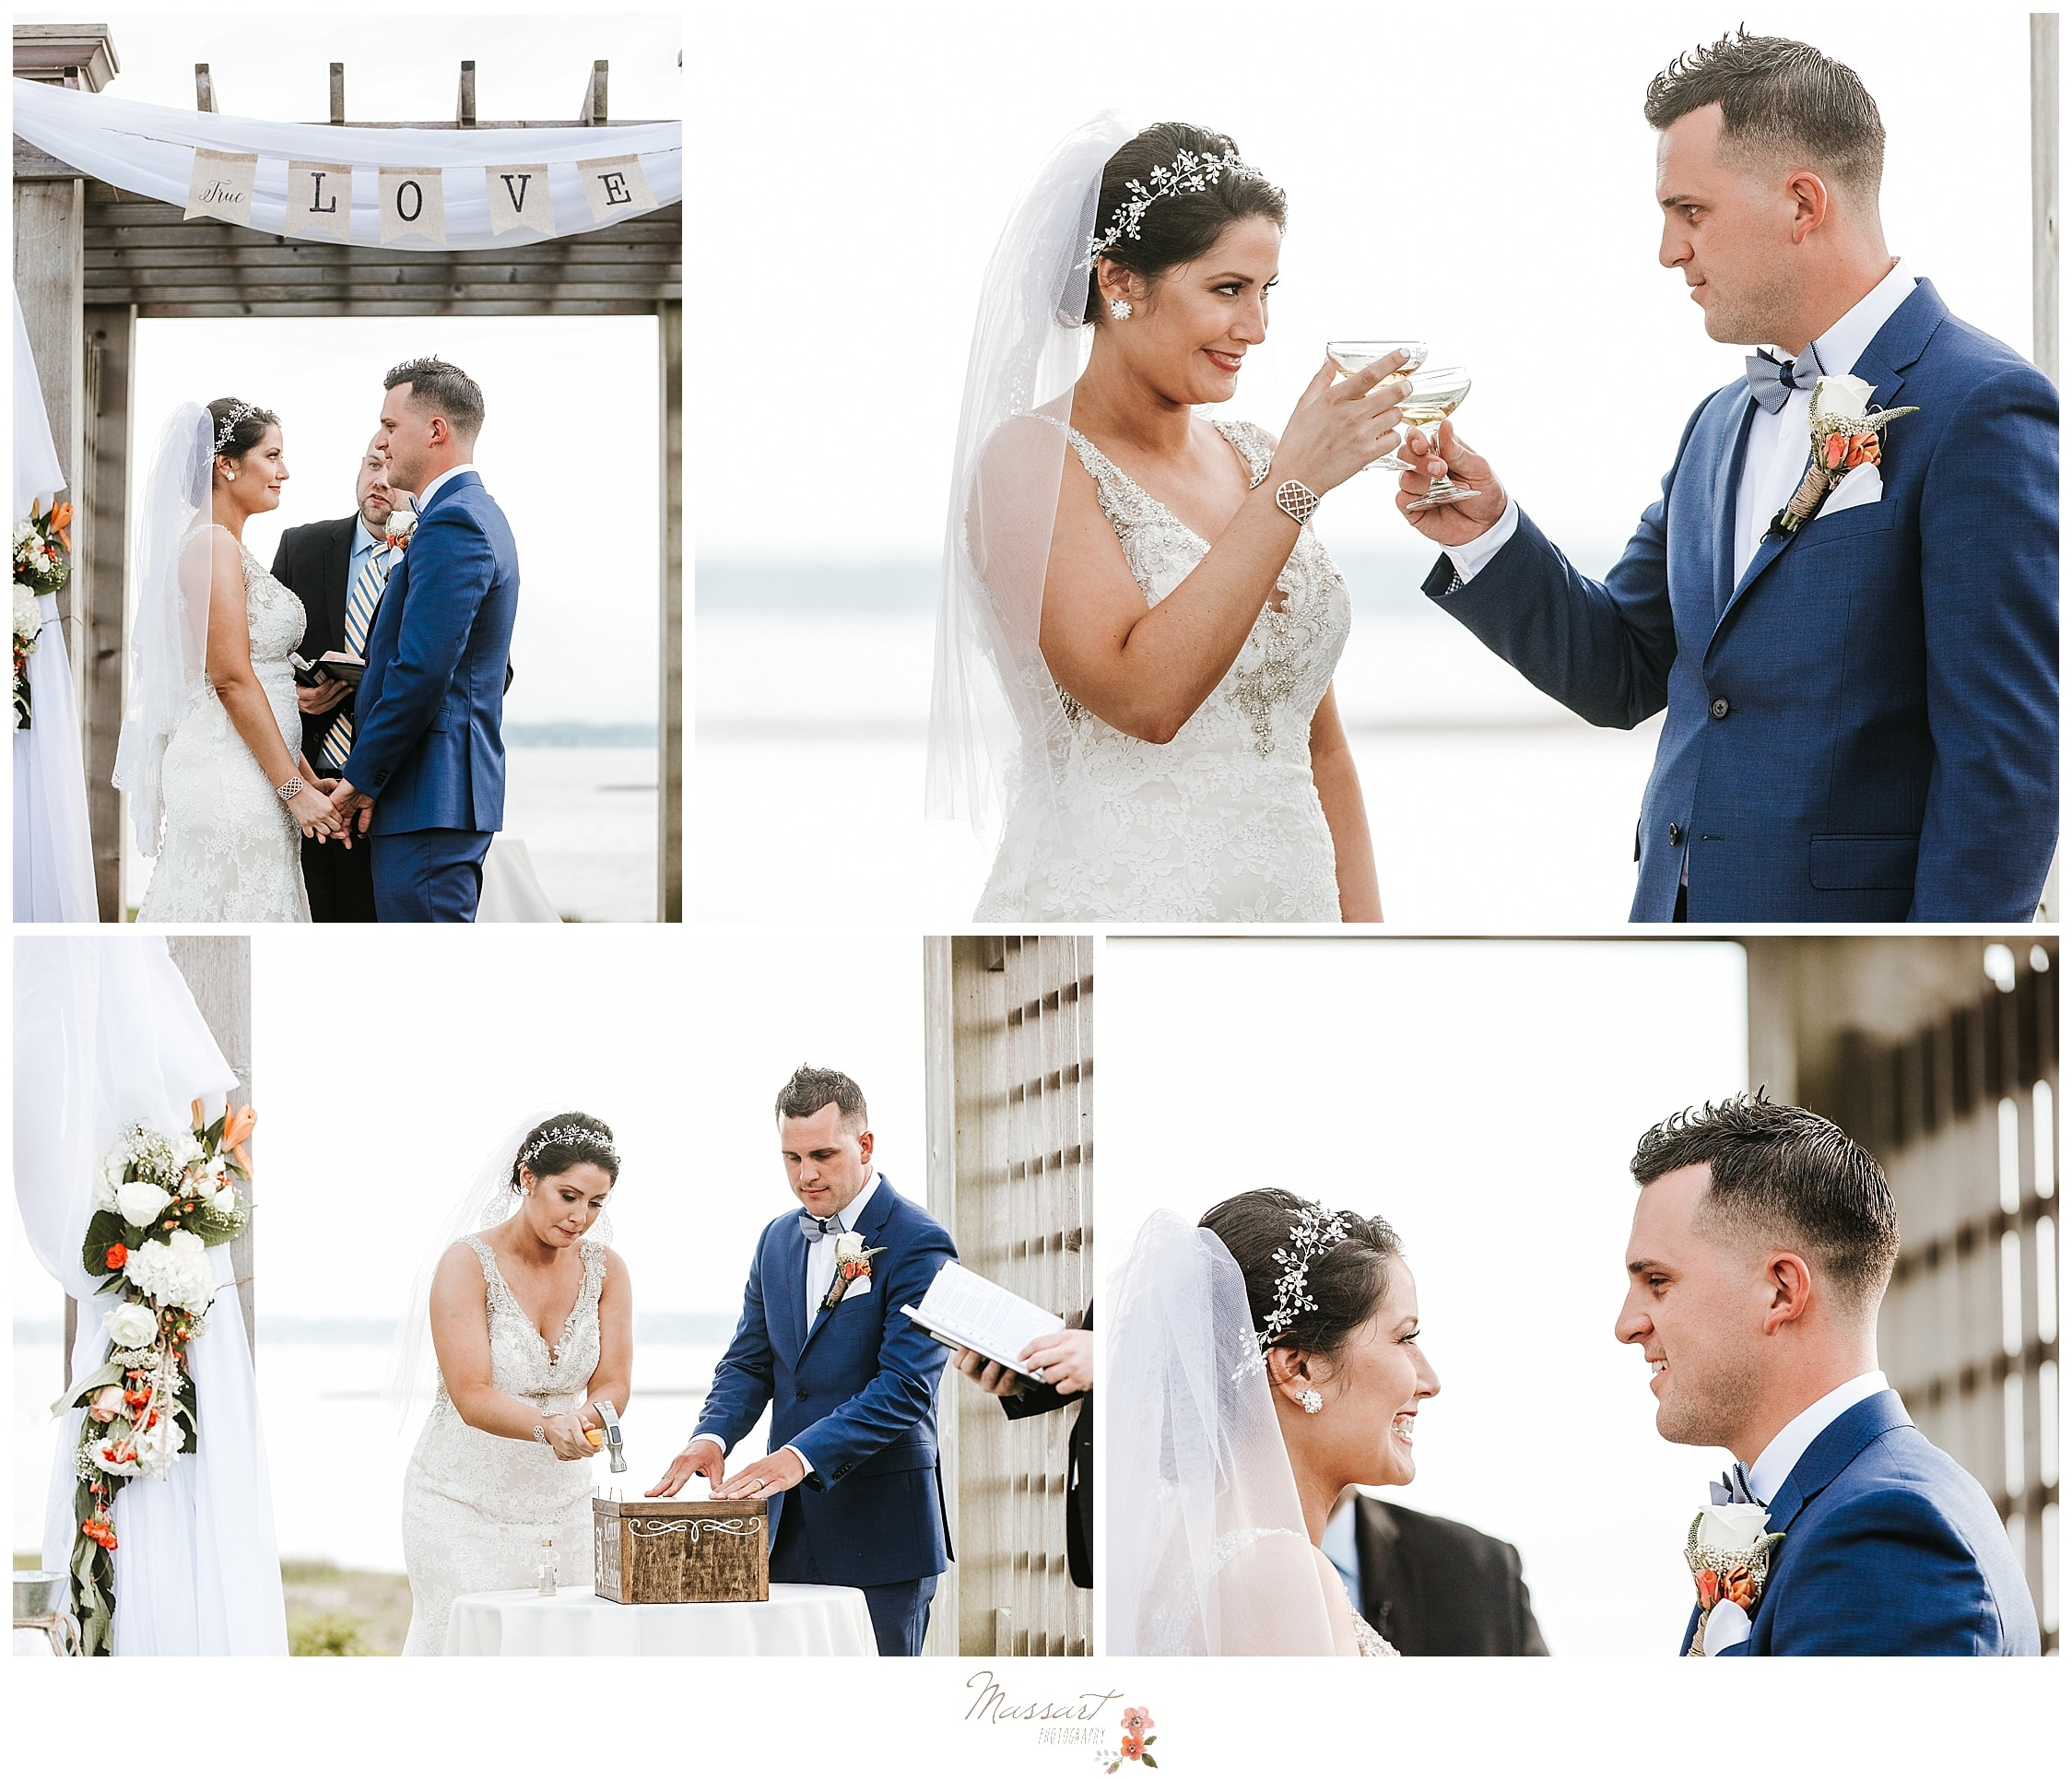 Waterfront wedding ceremony with champagne at Harbor Lights in RI photographed by Massart Photography, RI CT and MA wedding photographers.